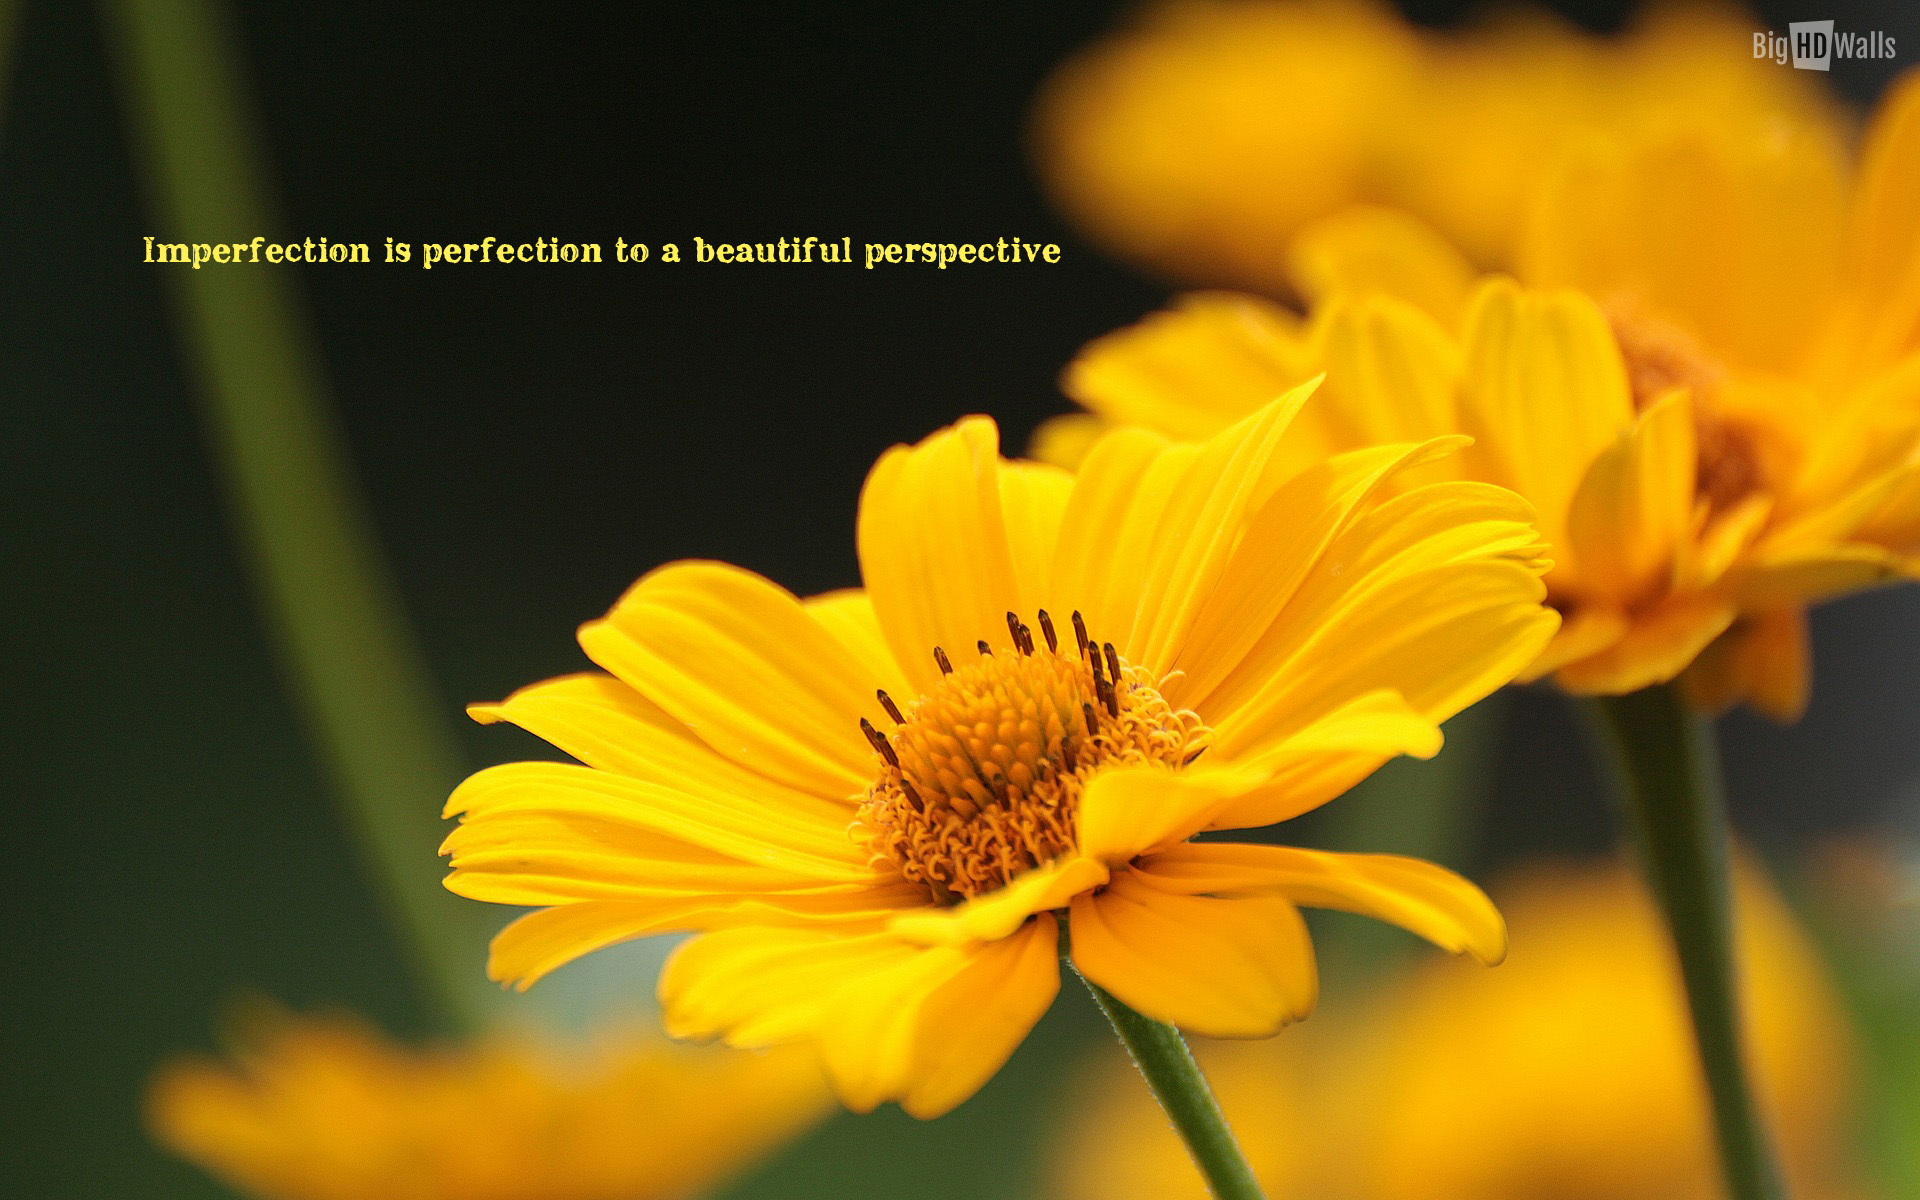 White Flowers Images With Quotes 2 Free Hd Wallpaper